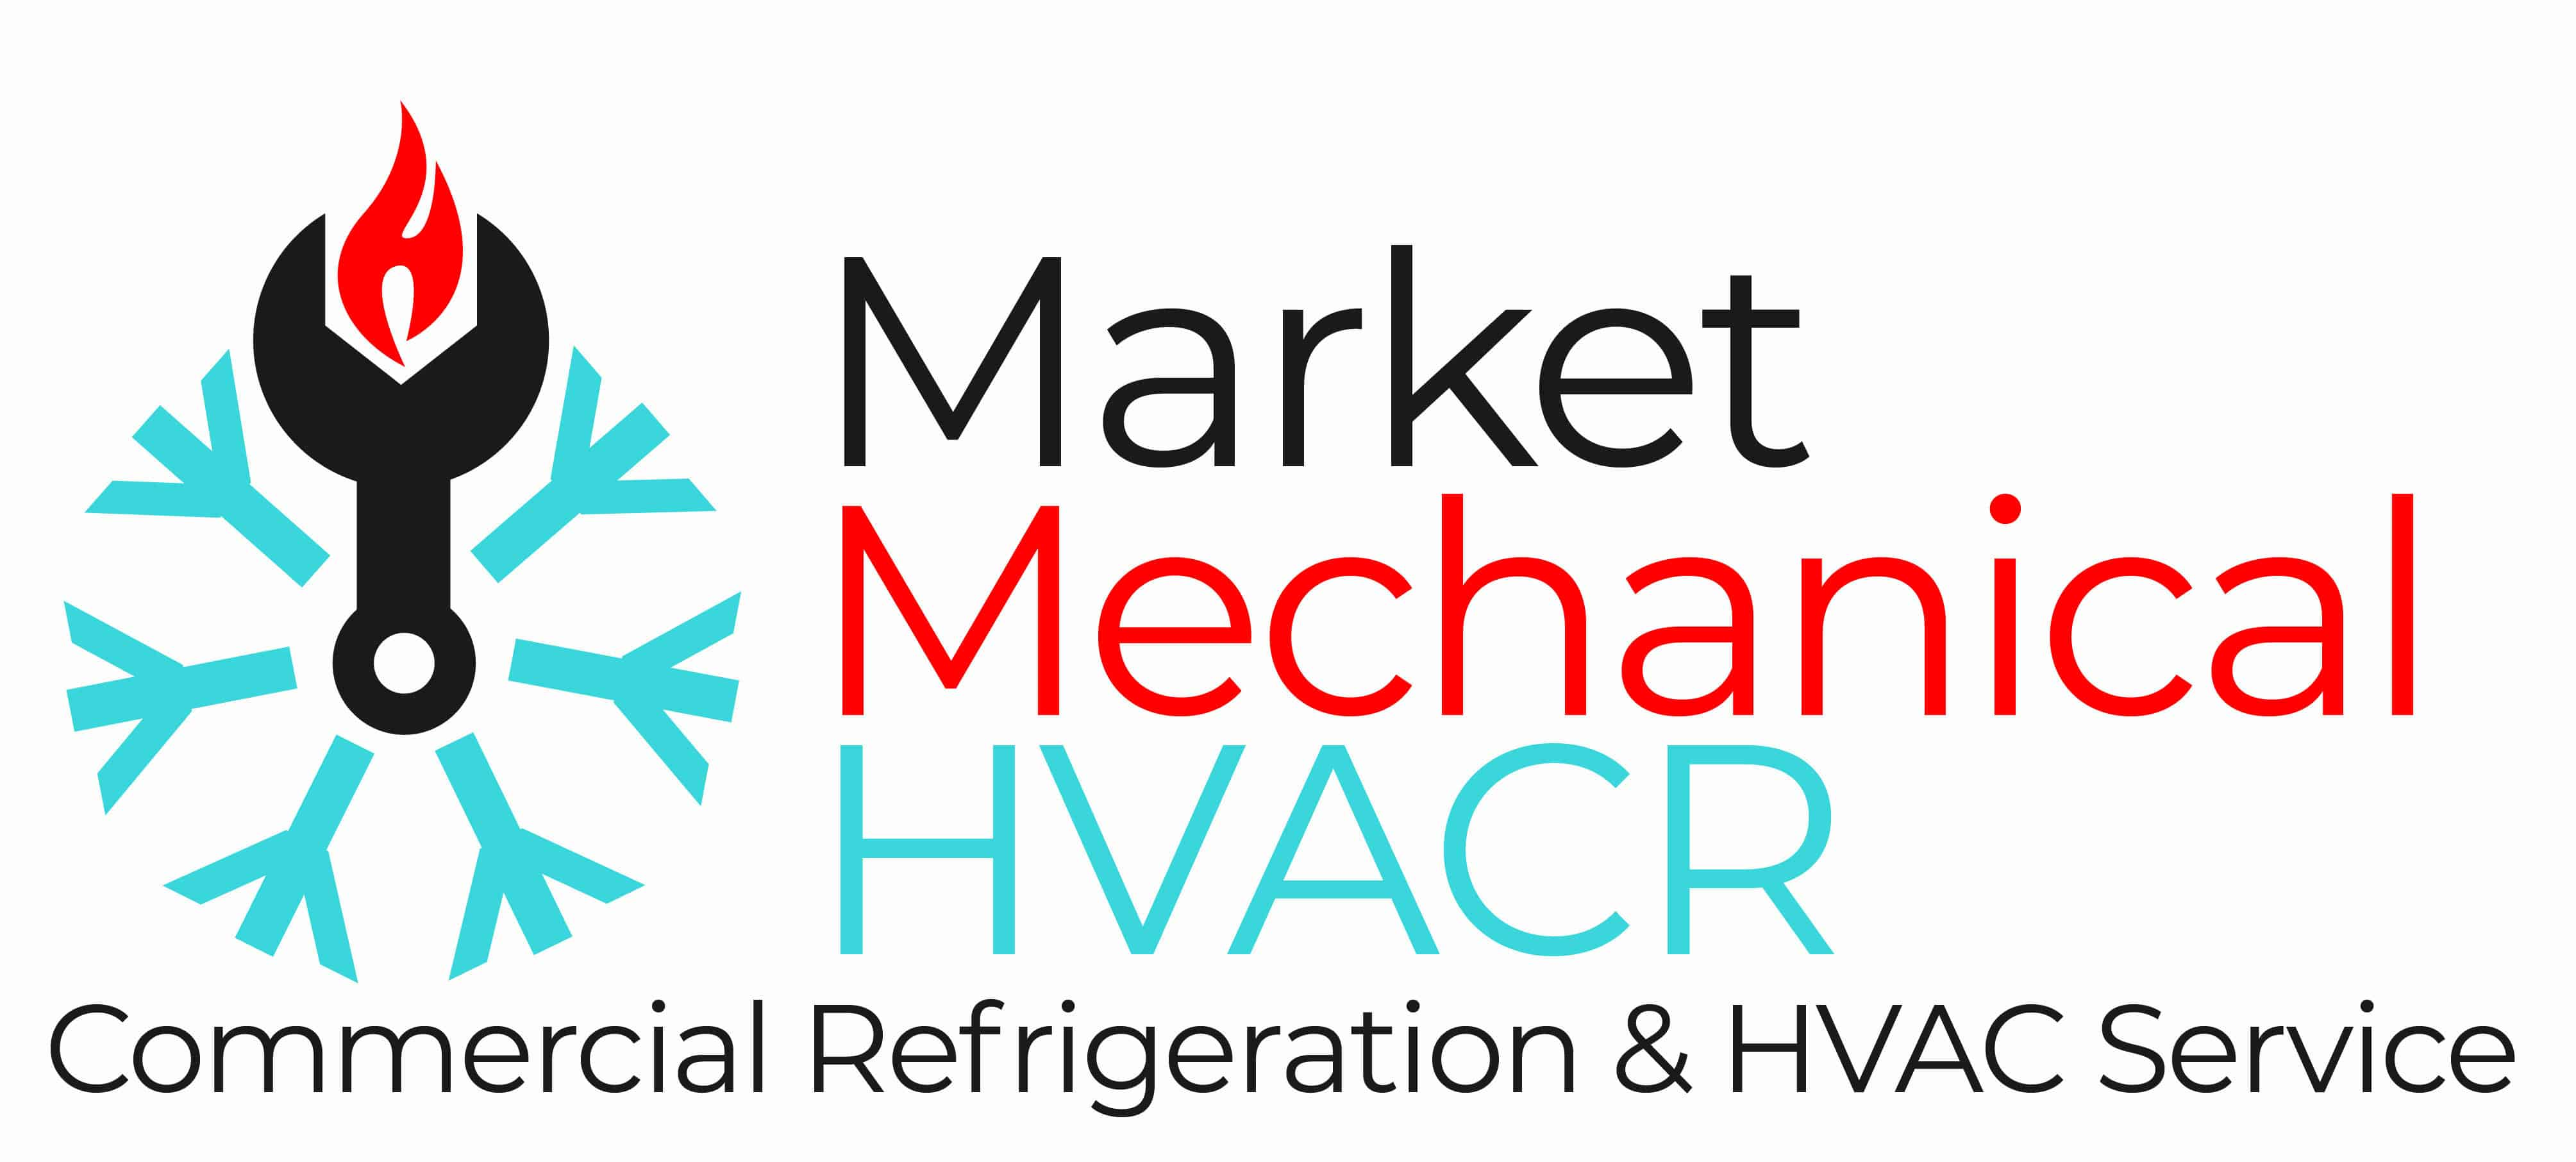 Market Mechanical HVAC-Commercial Refrigeration & HVAC Service